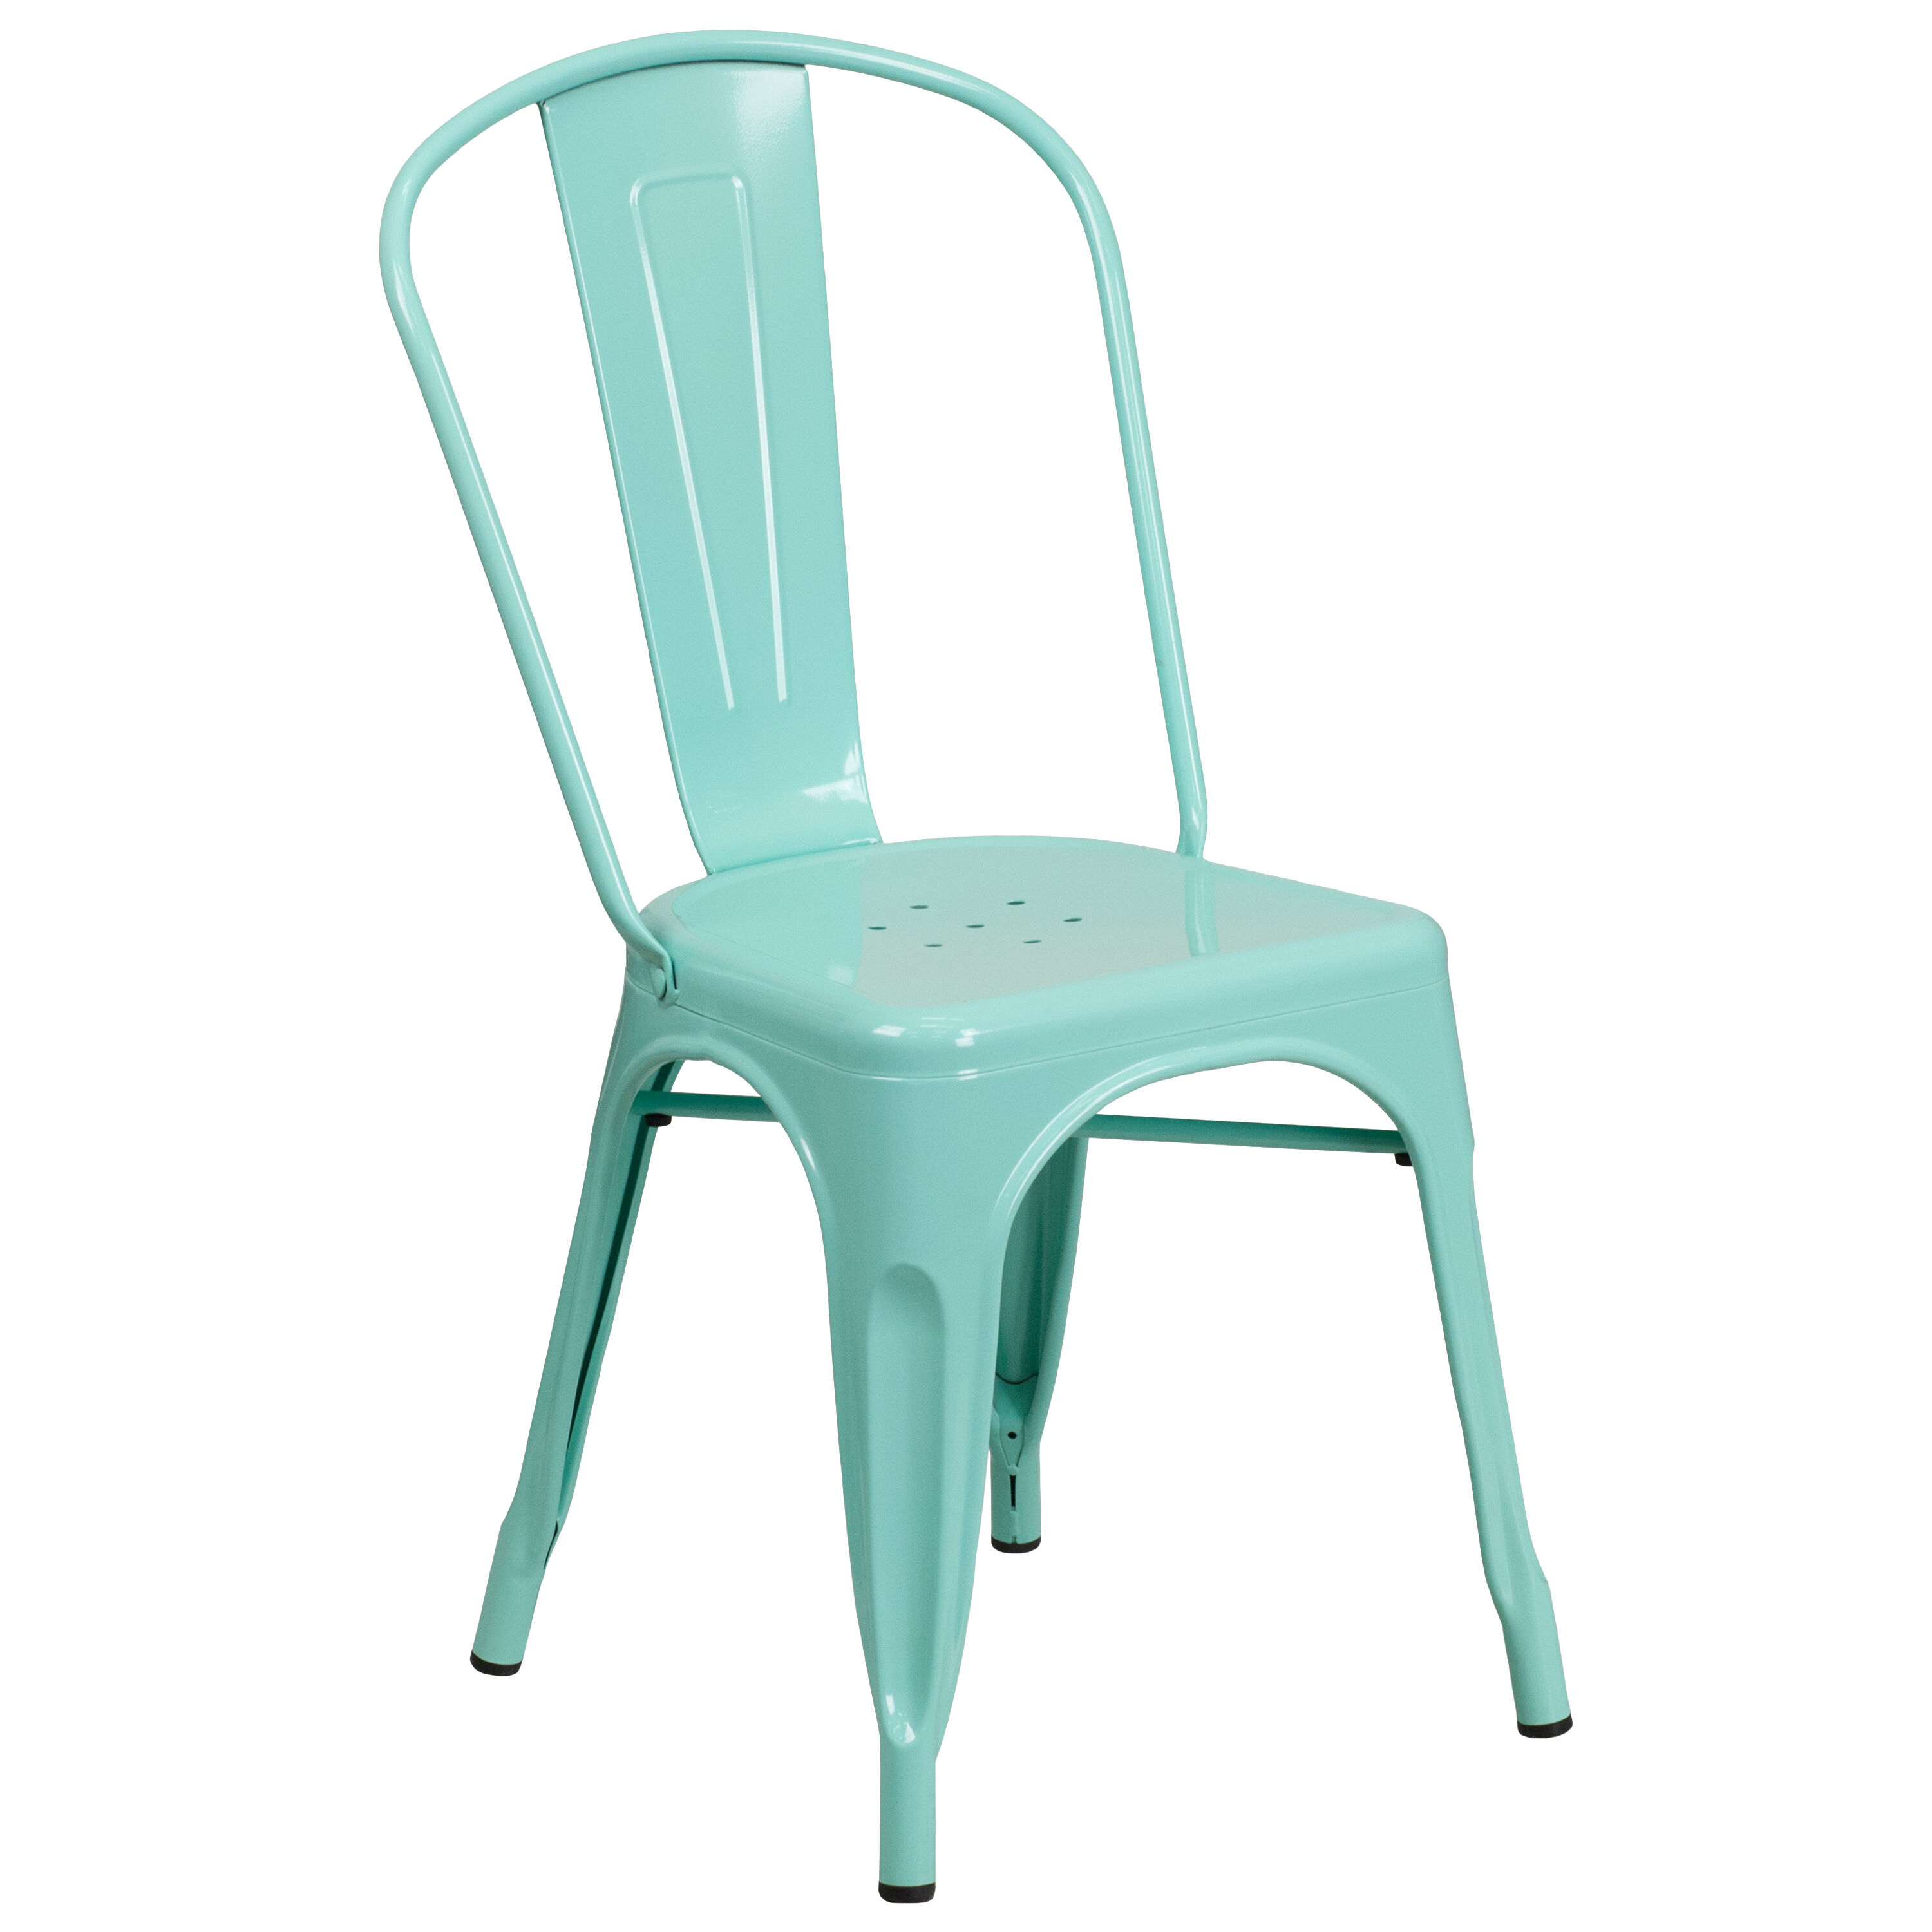 Outdoor metal chair Designer Mint Green Metal Indooroutdoor Stackable Chair The Martha Stewart Blog Stackchairs4less Dining Stack Chairs